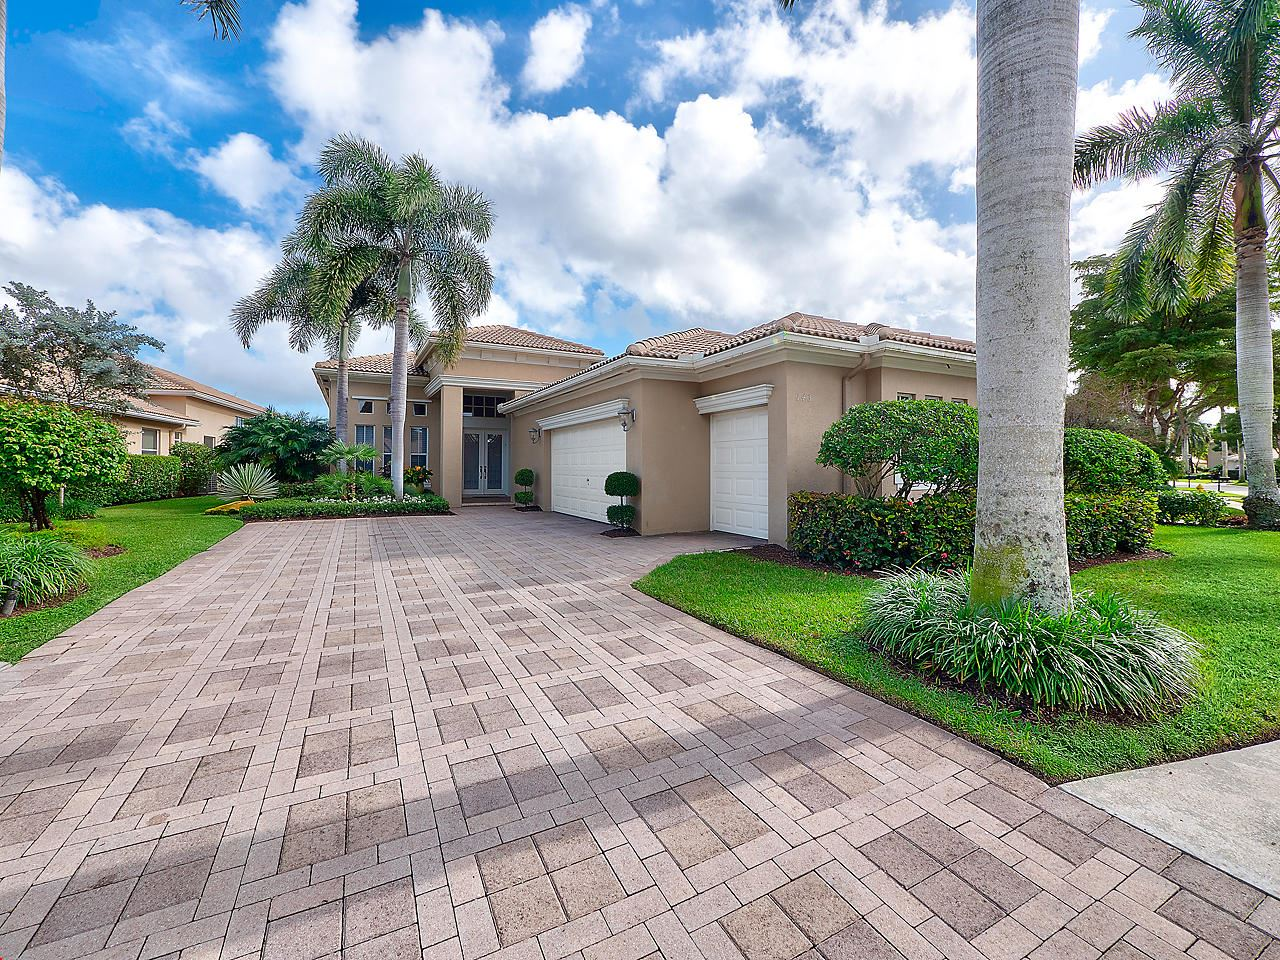 Photo of 143 Orchid Cay Drive, Palm Beach Gardens, FL 33418 (MLS # RX-10584194)